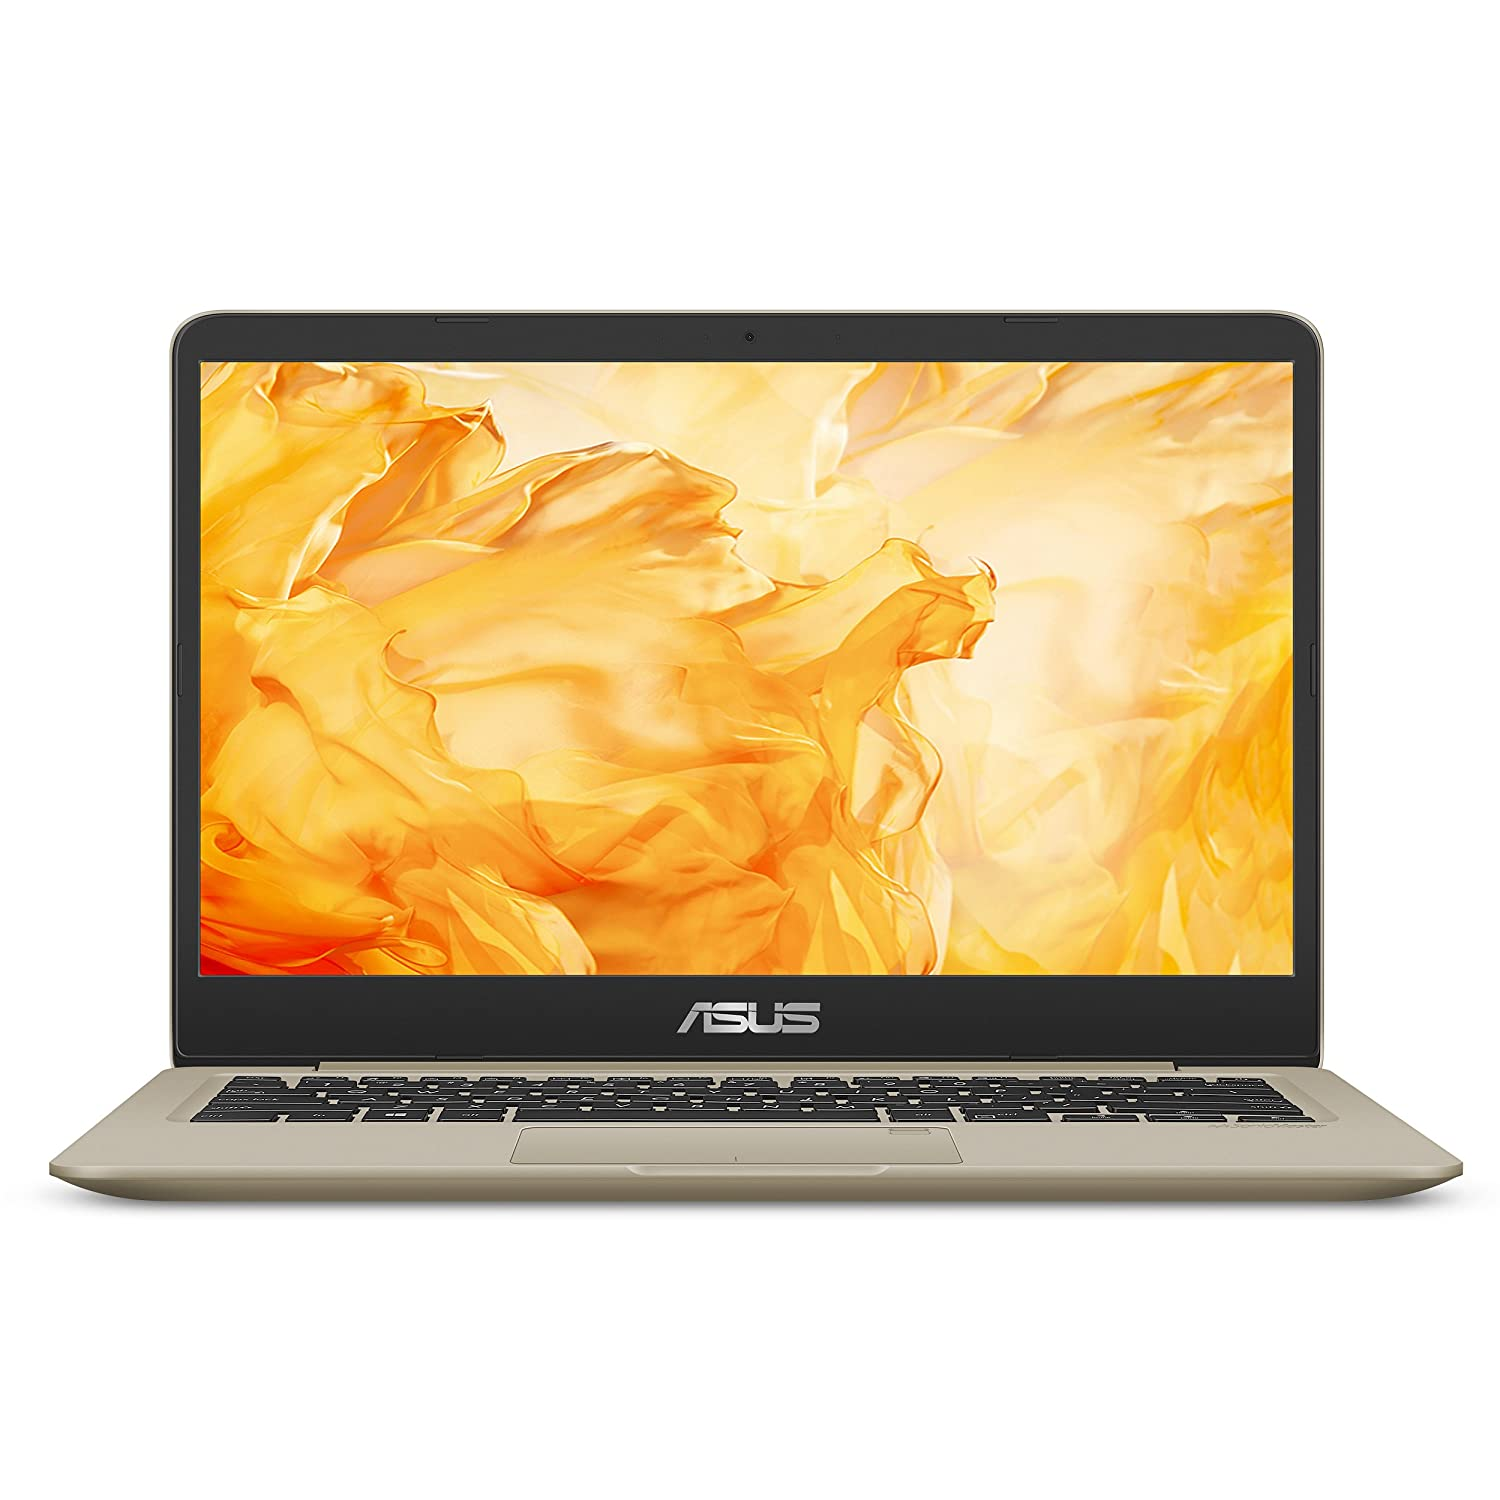 ASUS VivoBook S Thin & Light Laptop, 14″ FHD, Intel Core i7-8550U, 8GB RAM, 256GB SSD, GeForce MX150, NanoEdge Display, Backlit Kbd, FP Sensor – S410UN-NS74